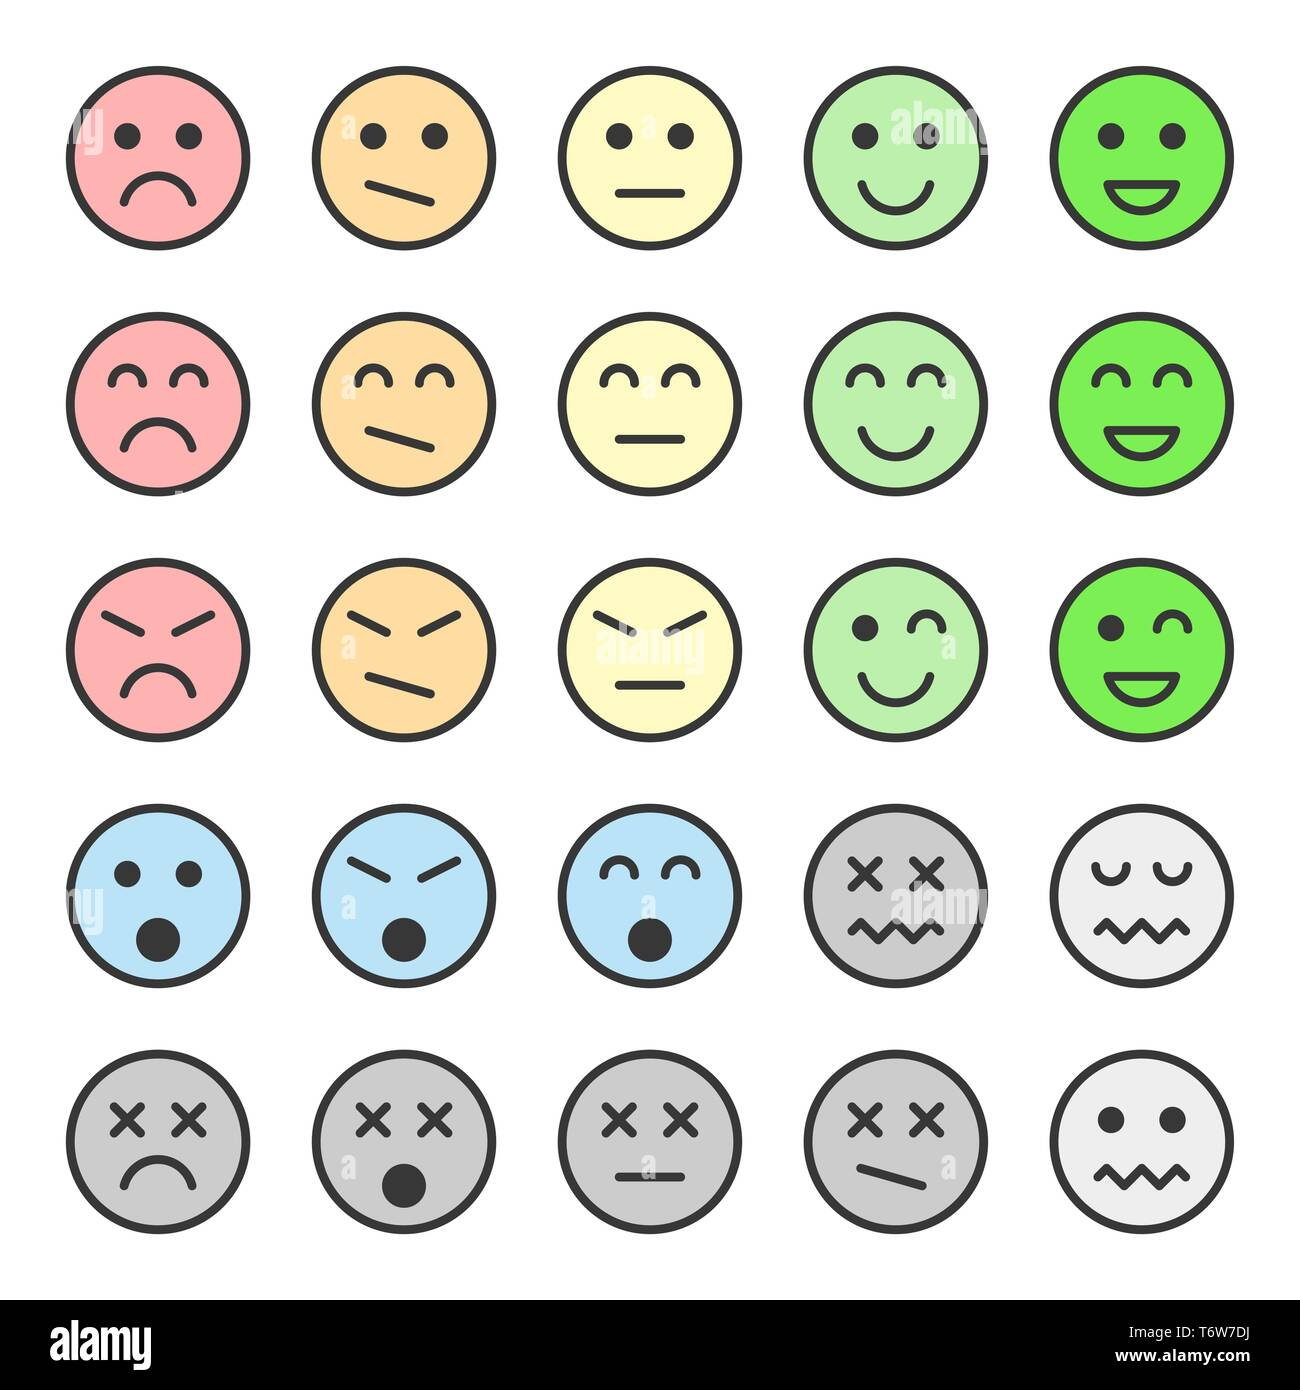 Set of pastel colors emoticons, faces icons. Vector illustration. Isolated on white background. - Stock Image